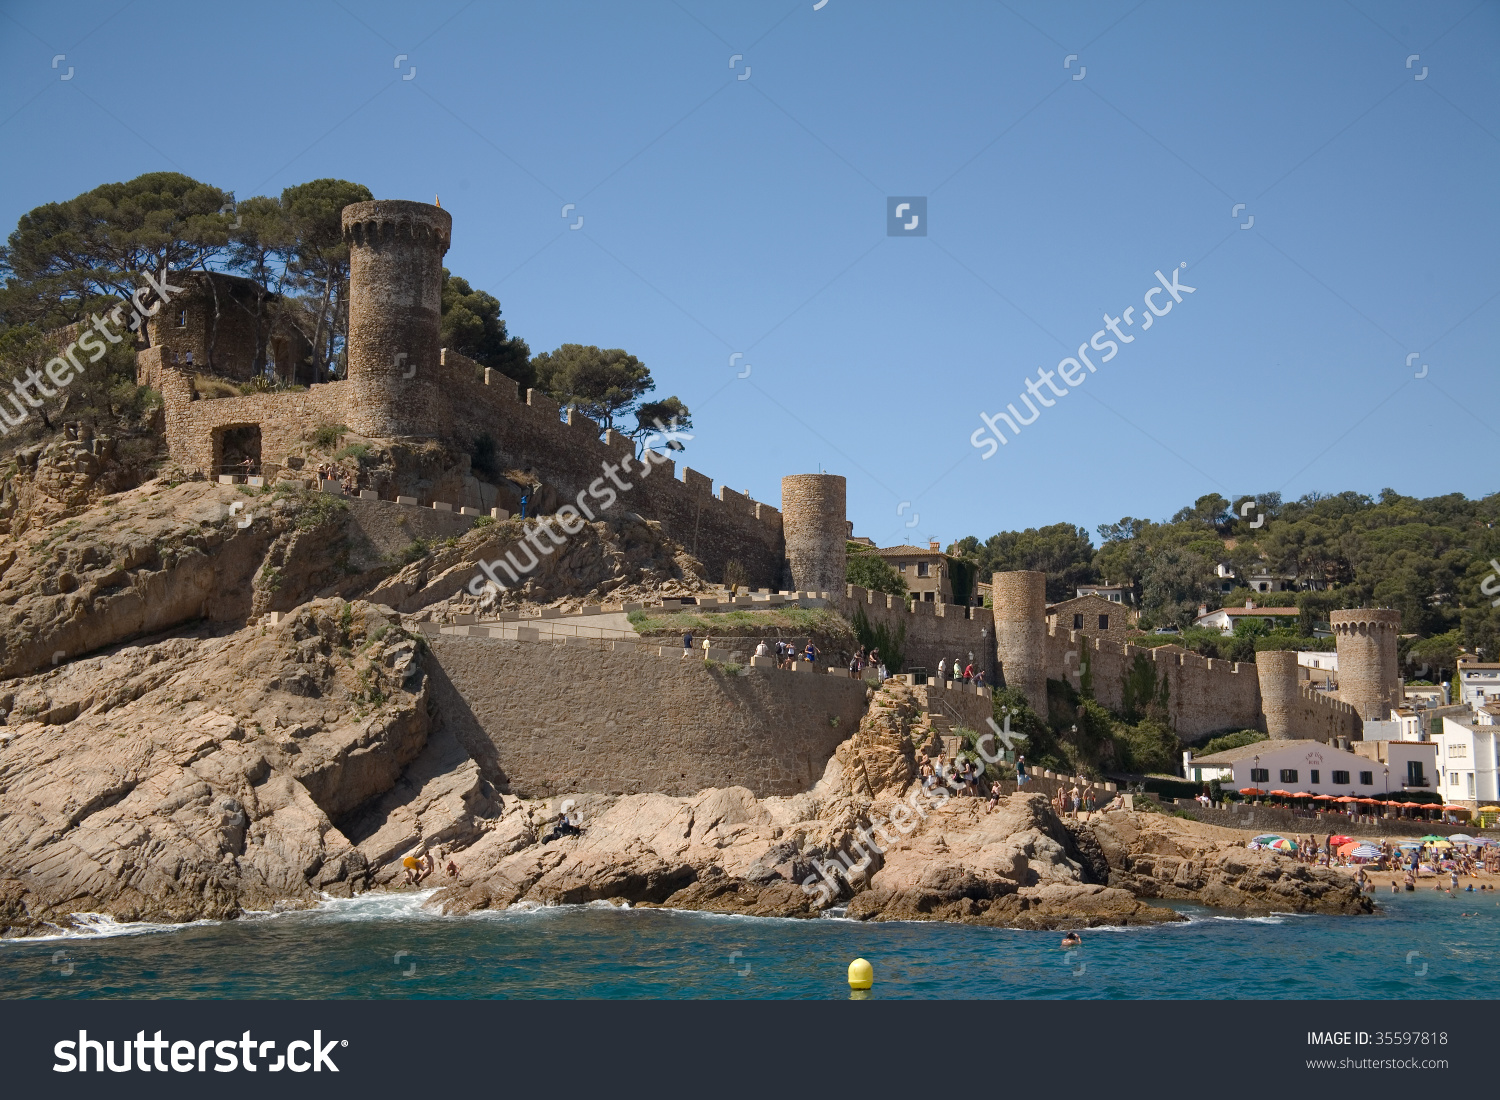 Castle On The Beach (Tossa Del Mar, Catalonia, Spain) Stock Photo.